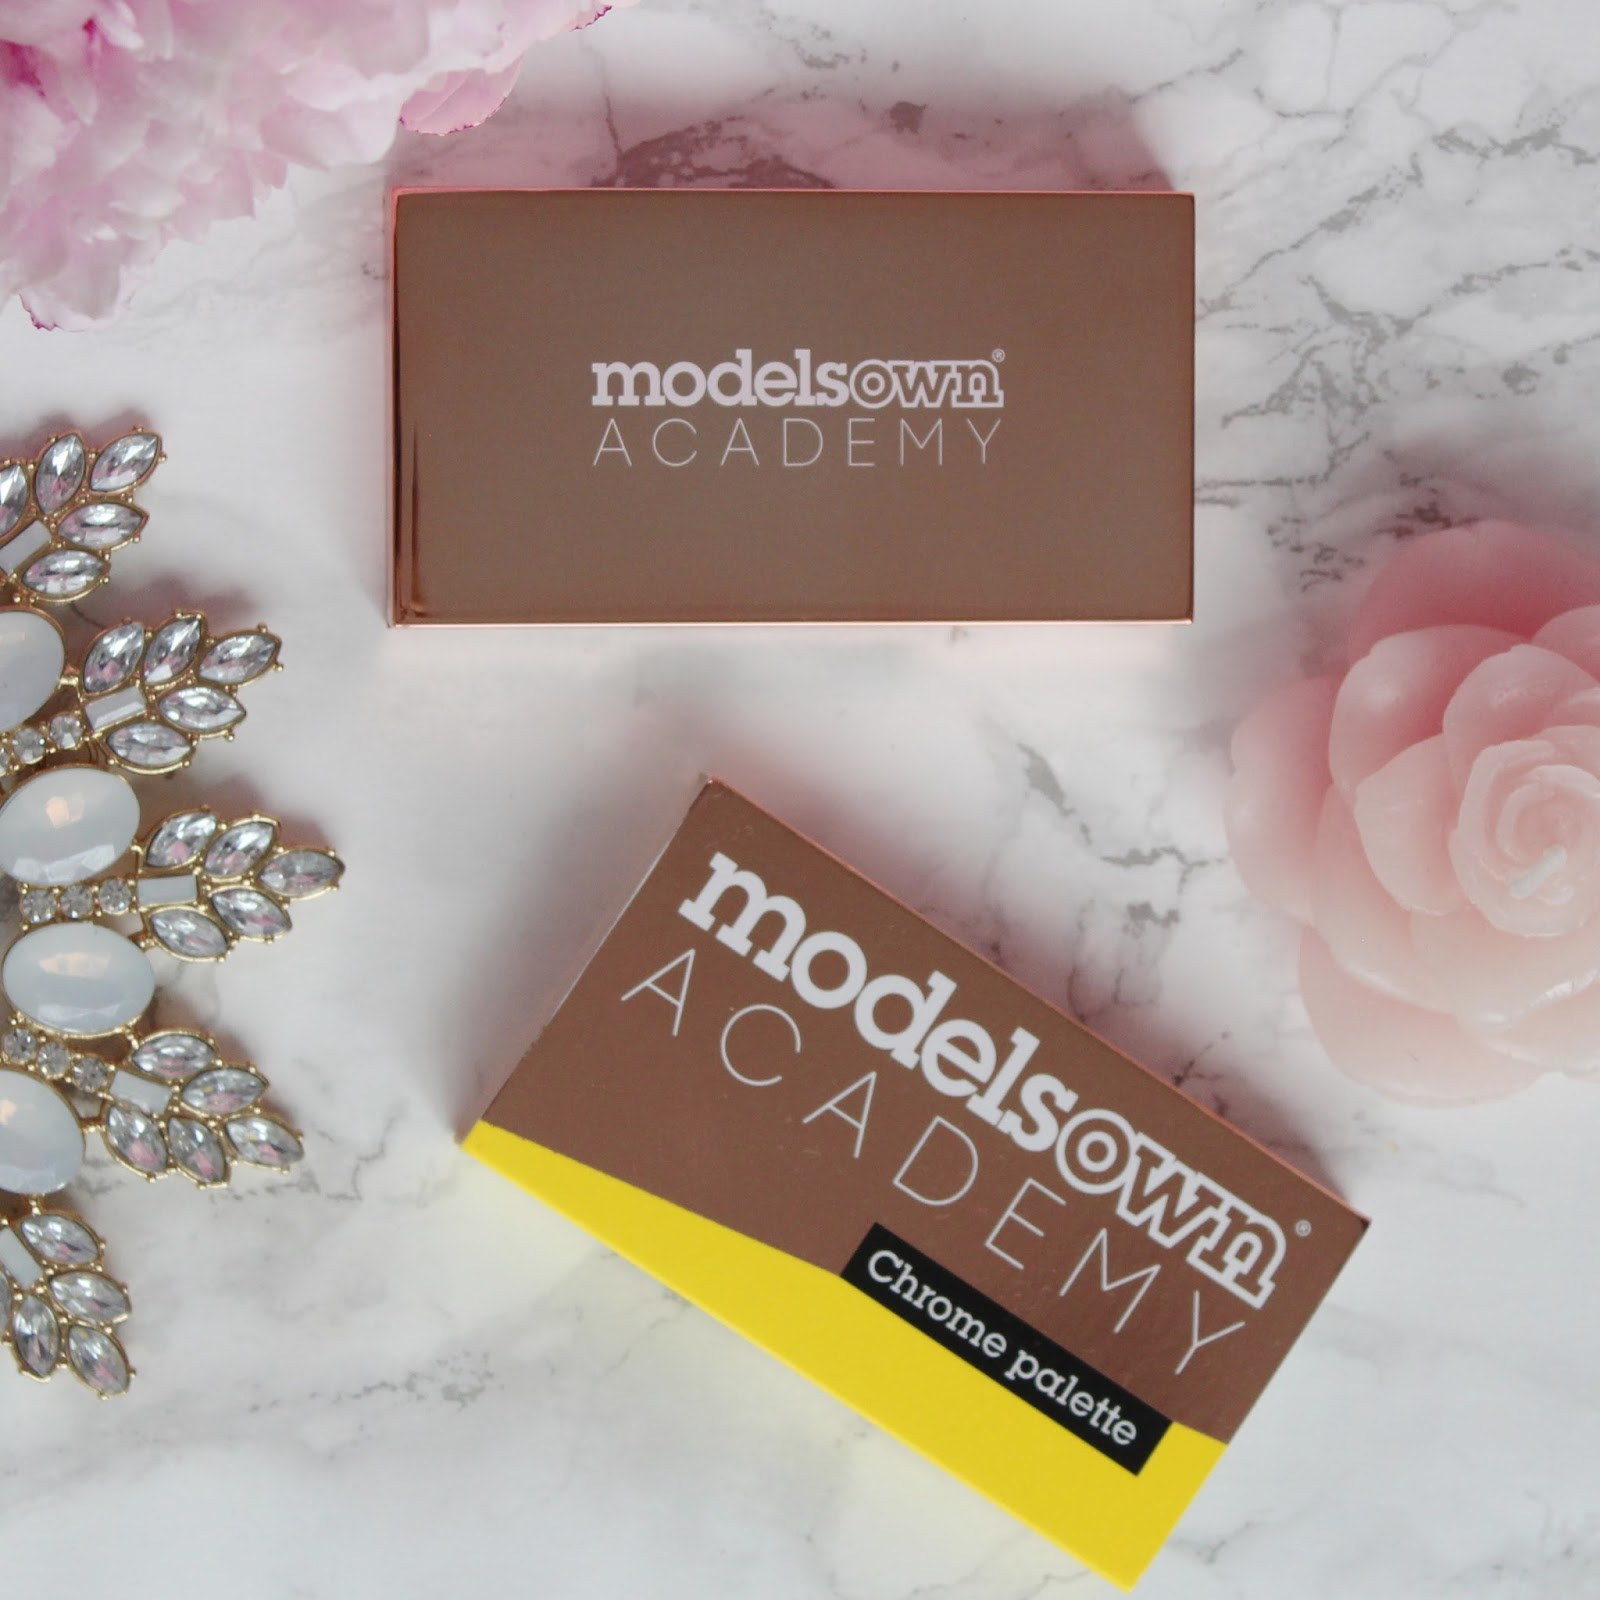 Models Own Chrome Eyeshadow Palette Review And Swatches